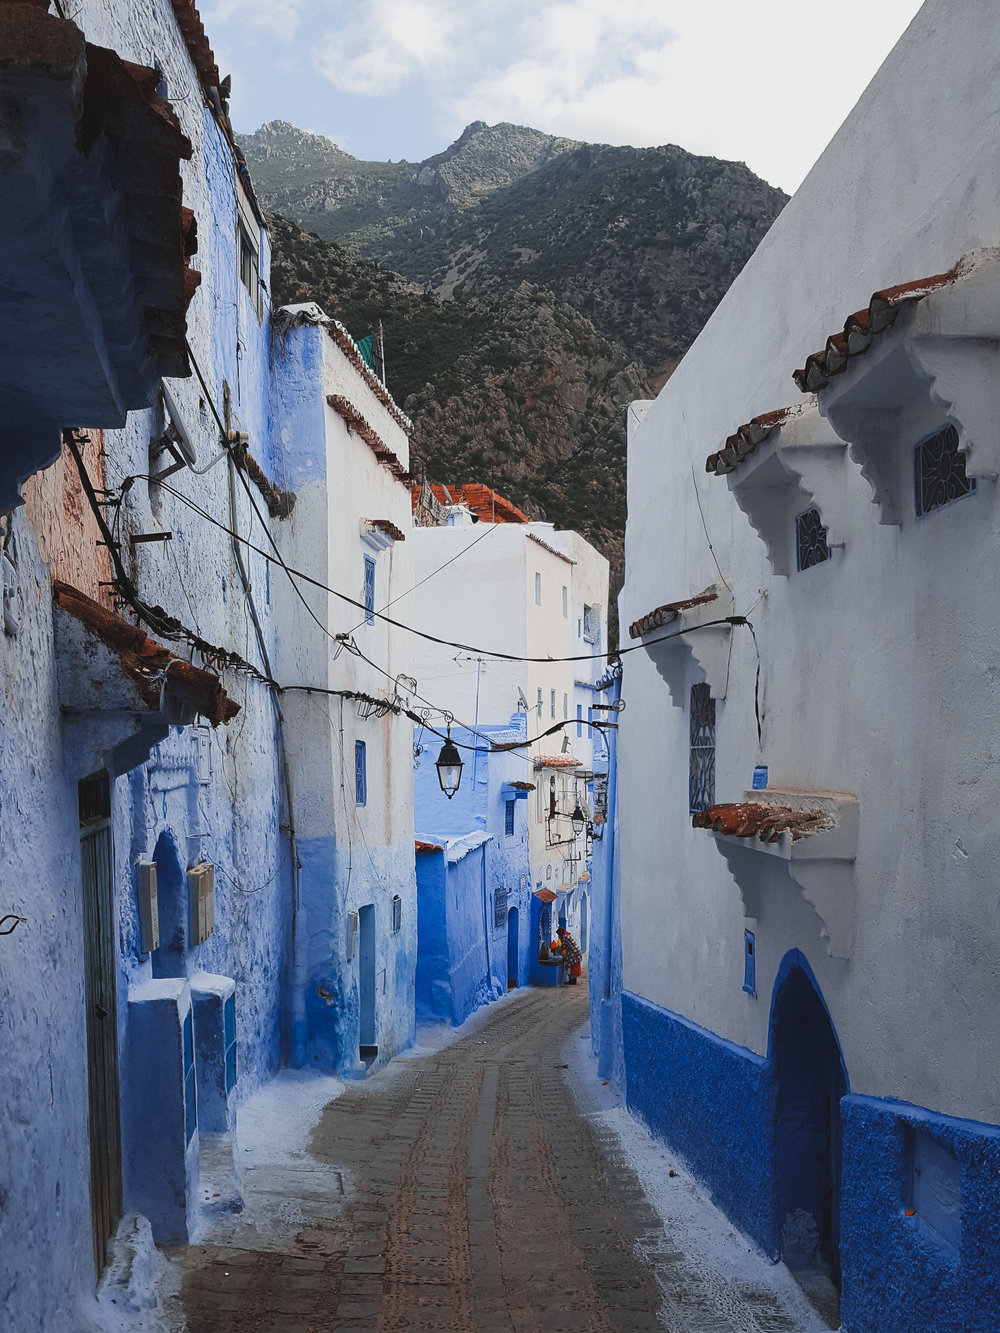 The alleyways in Chefchaouen are painted a brilliant, blue color